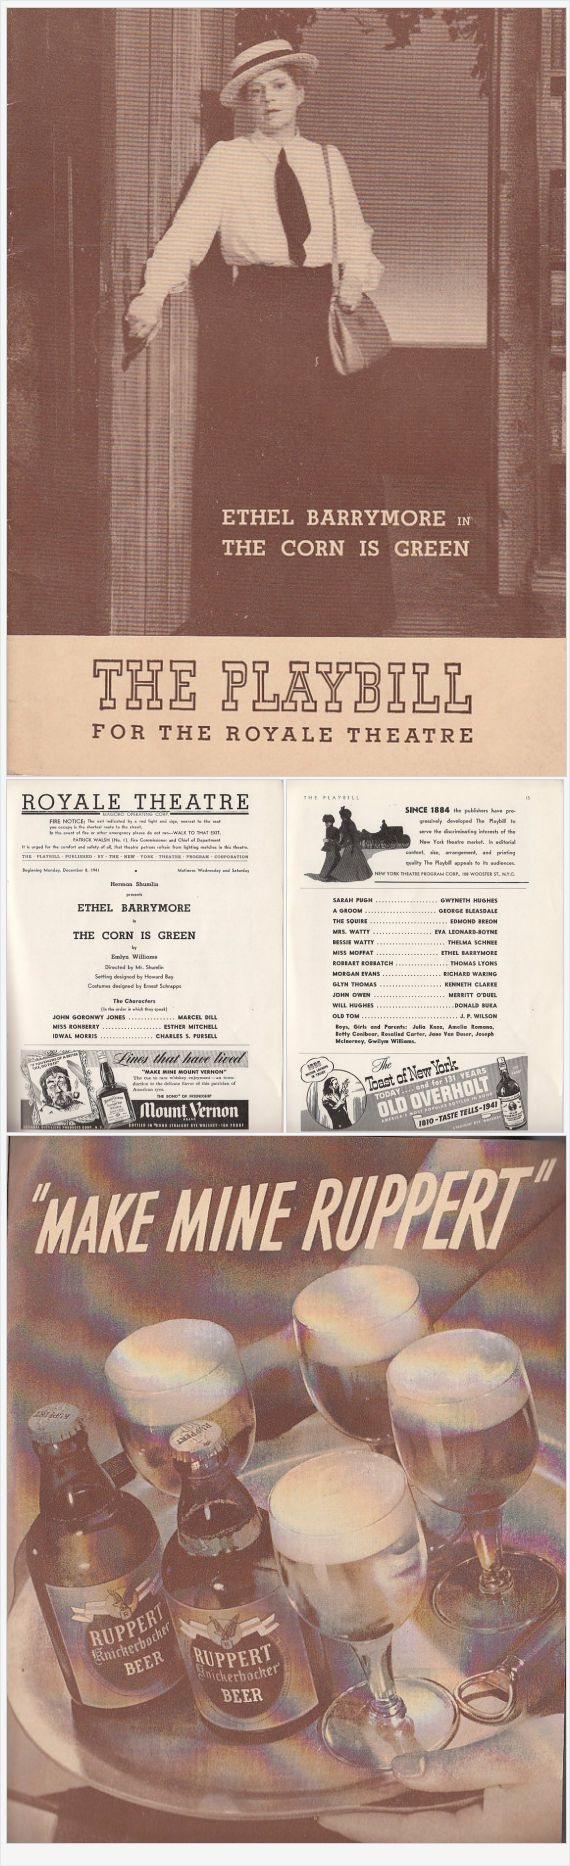 Ethel Barrymore in The Corn is Green 1941 Playbill Royale Theatre New York